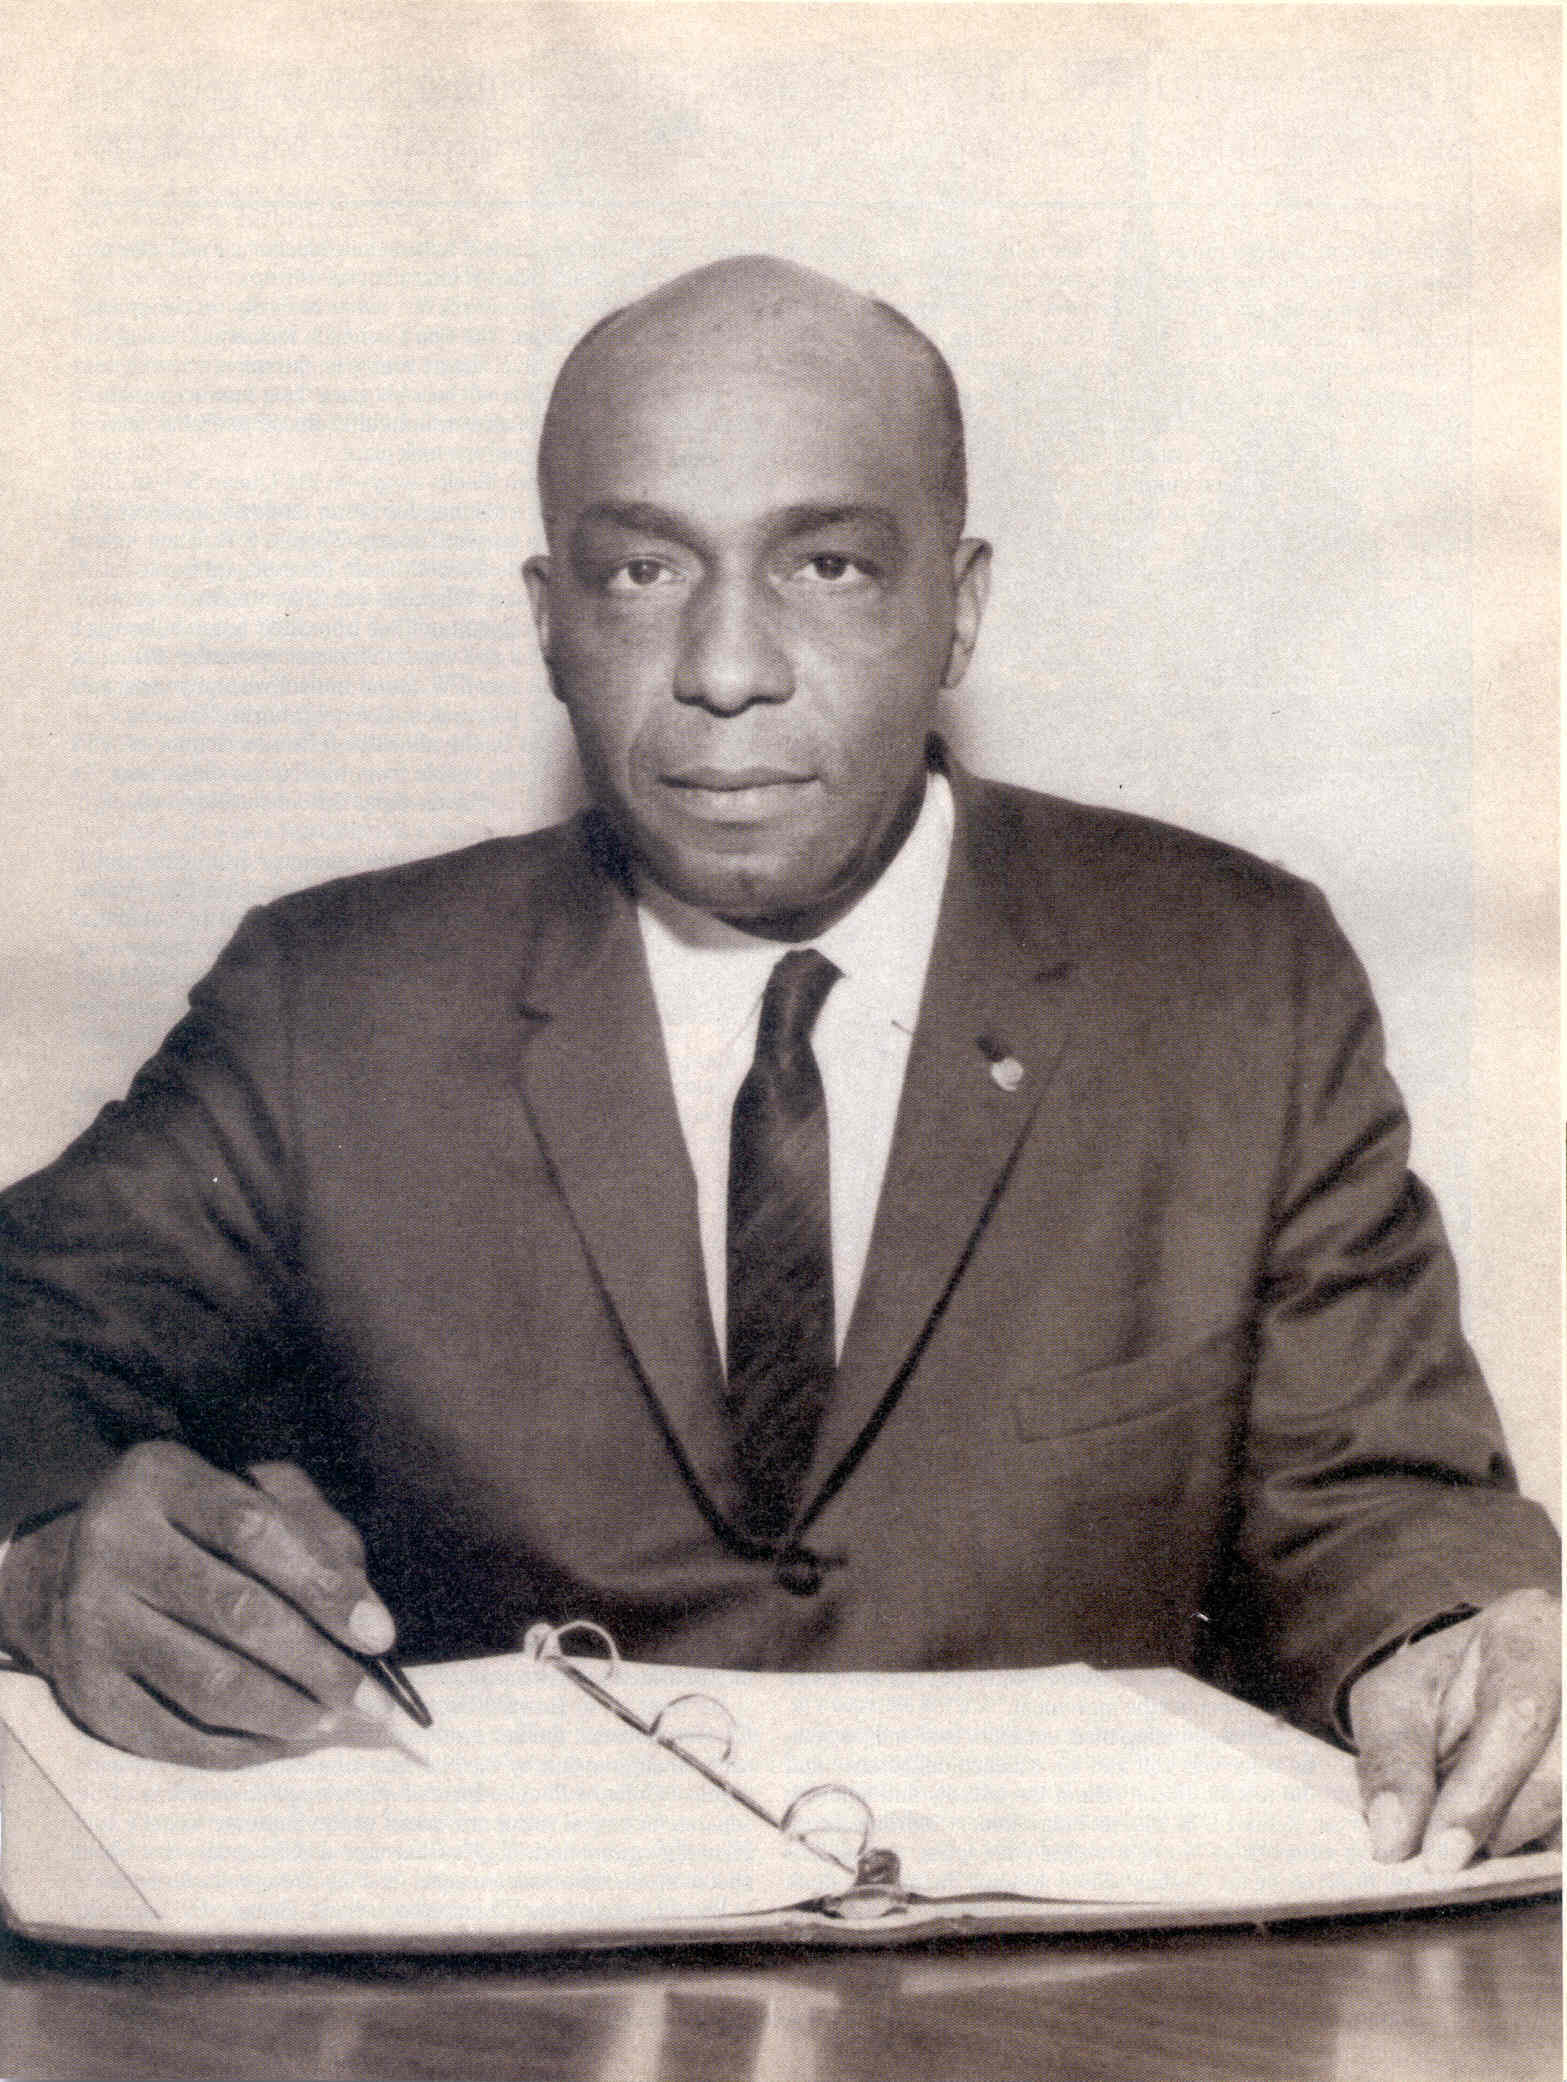 Samuel W. Tucker, an ardent opponent of Jim Crow laws in Virginia. (Courtesy of Alexandria Black History Museum collection)